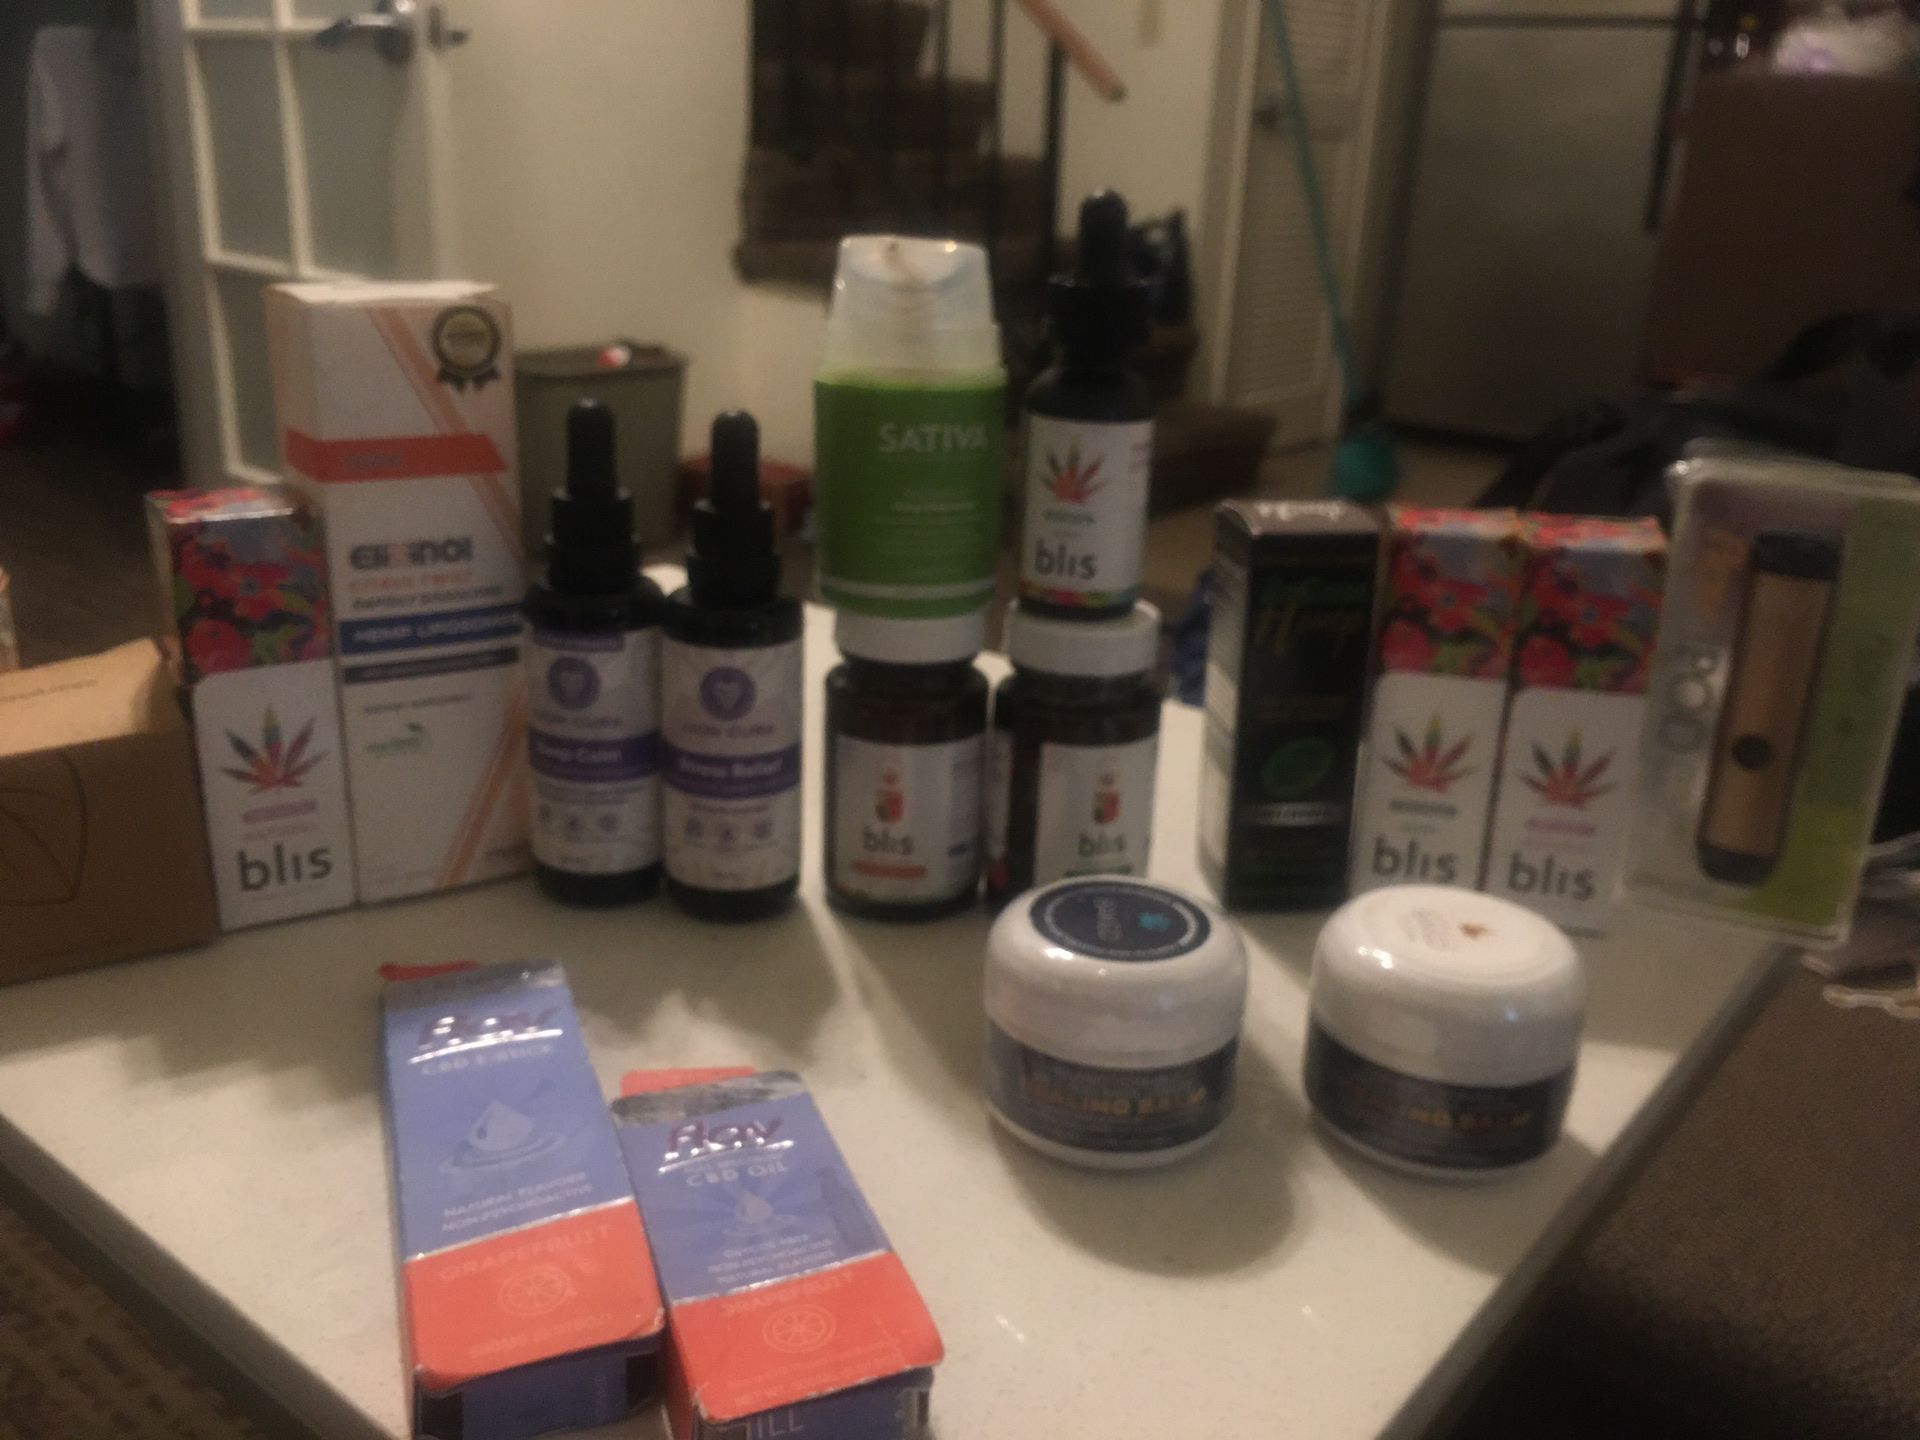 All most go all gud cannabis every thing goin for 850$